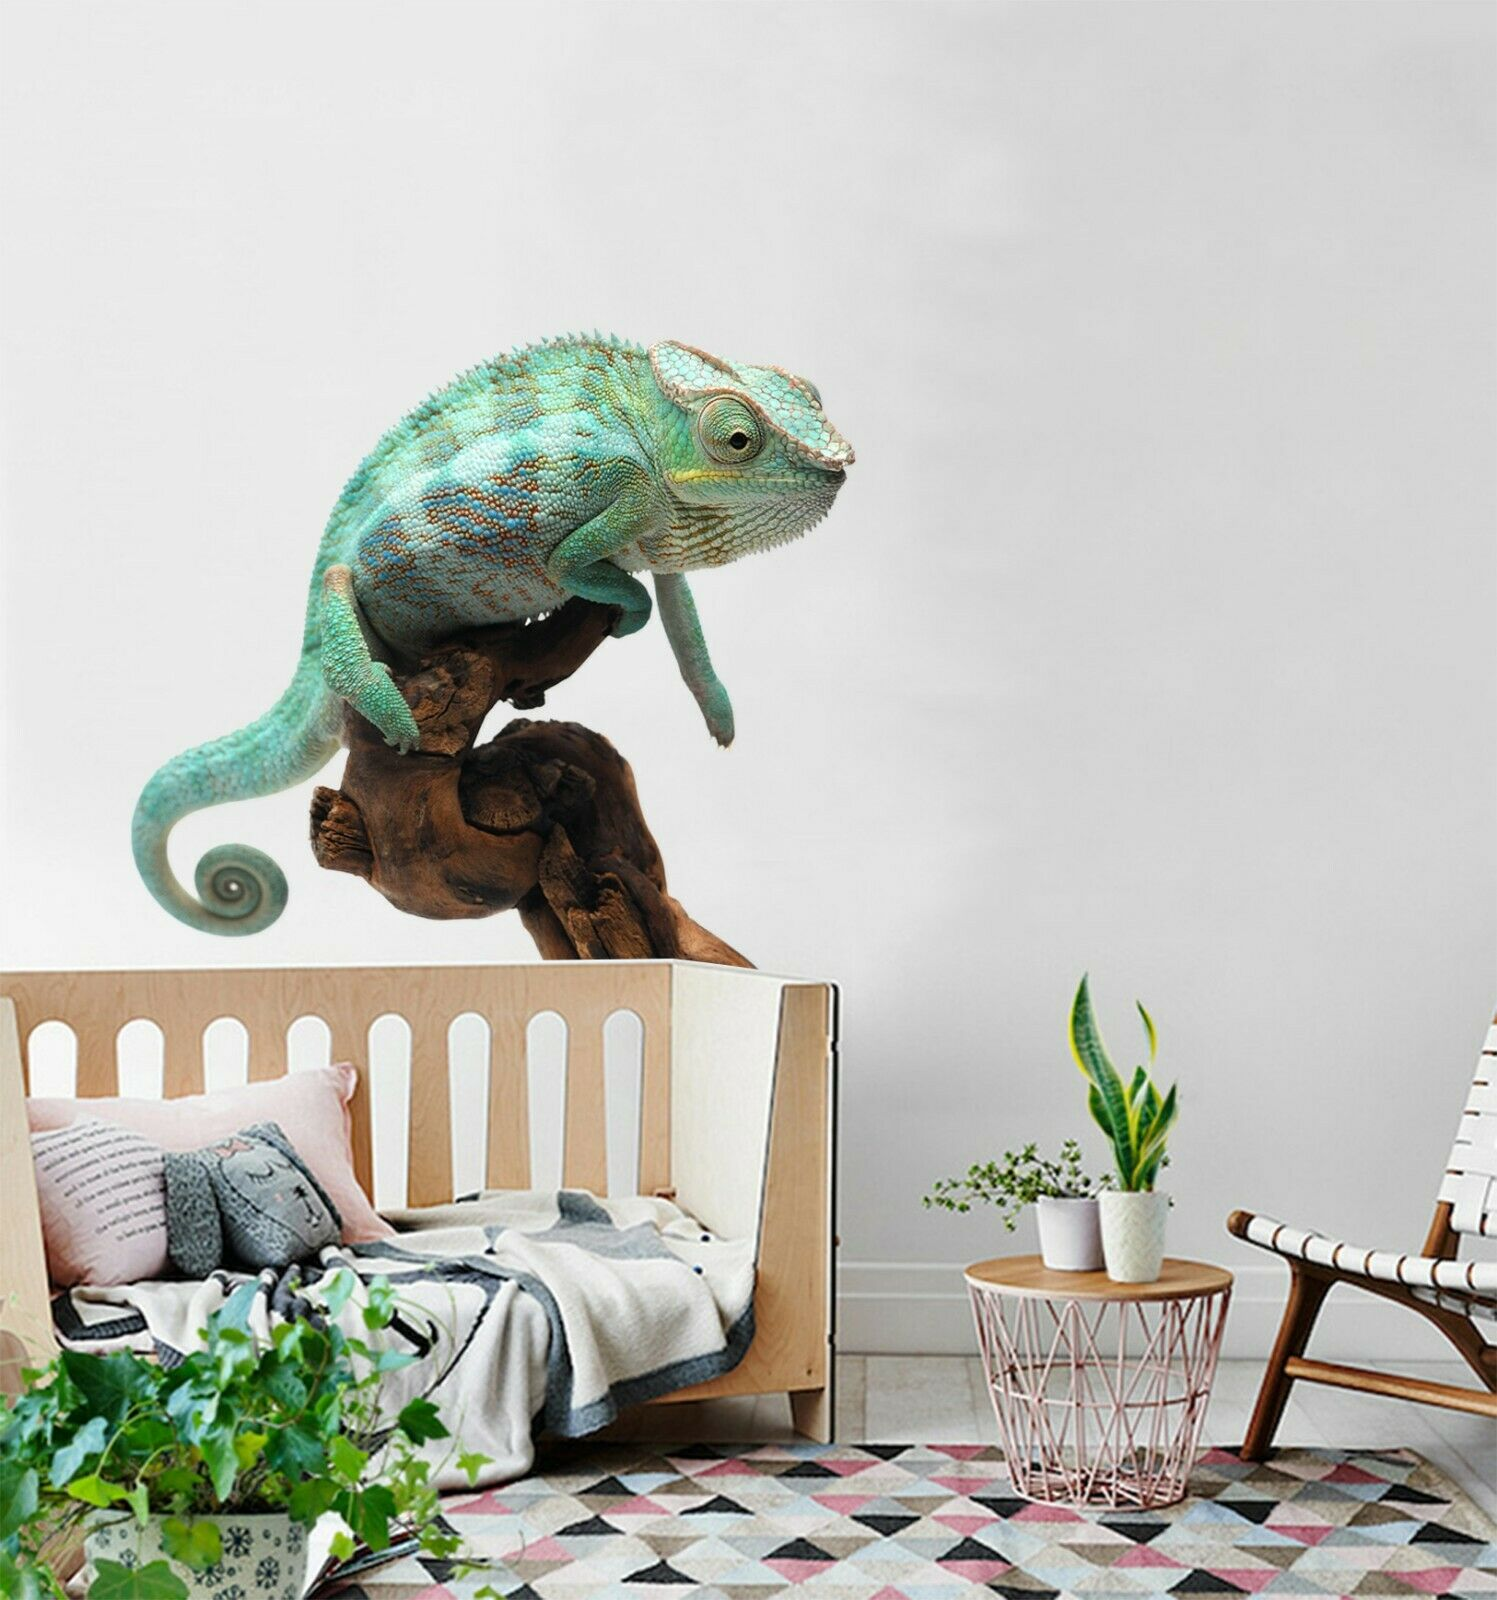 3D Chameleon O16 Animal Wallpaper Mural Poster Wall Stickers Decal Angelia